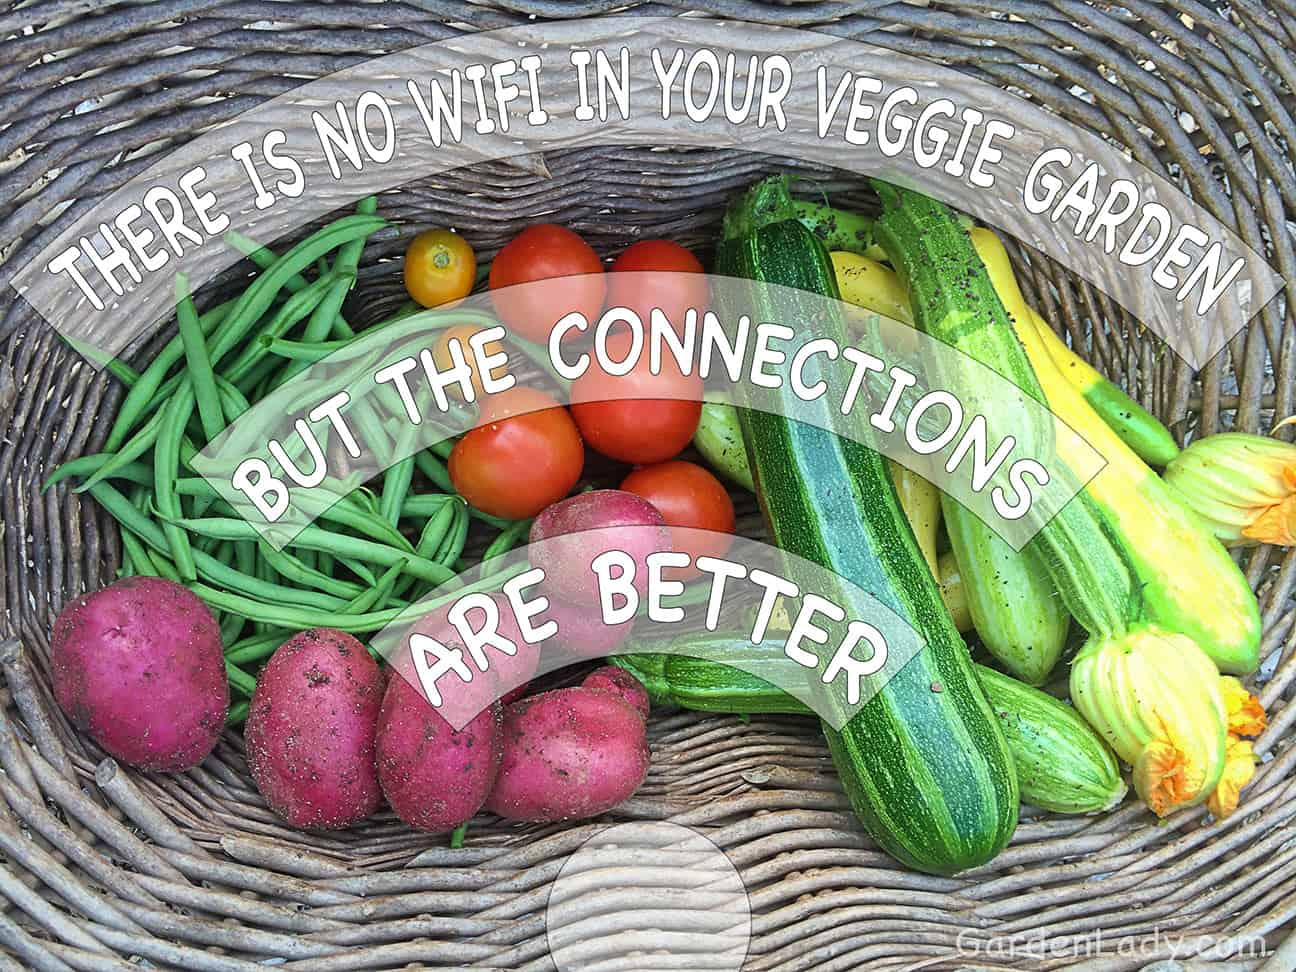 Better Connections Through Vegetable Gardening